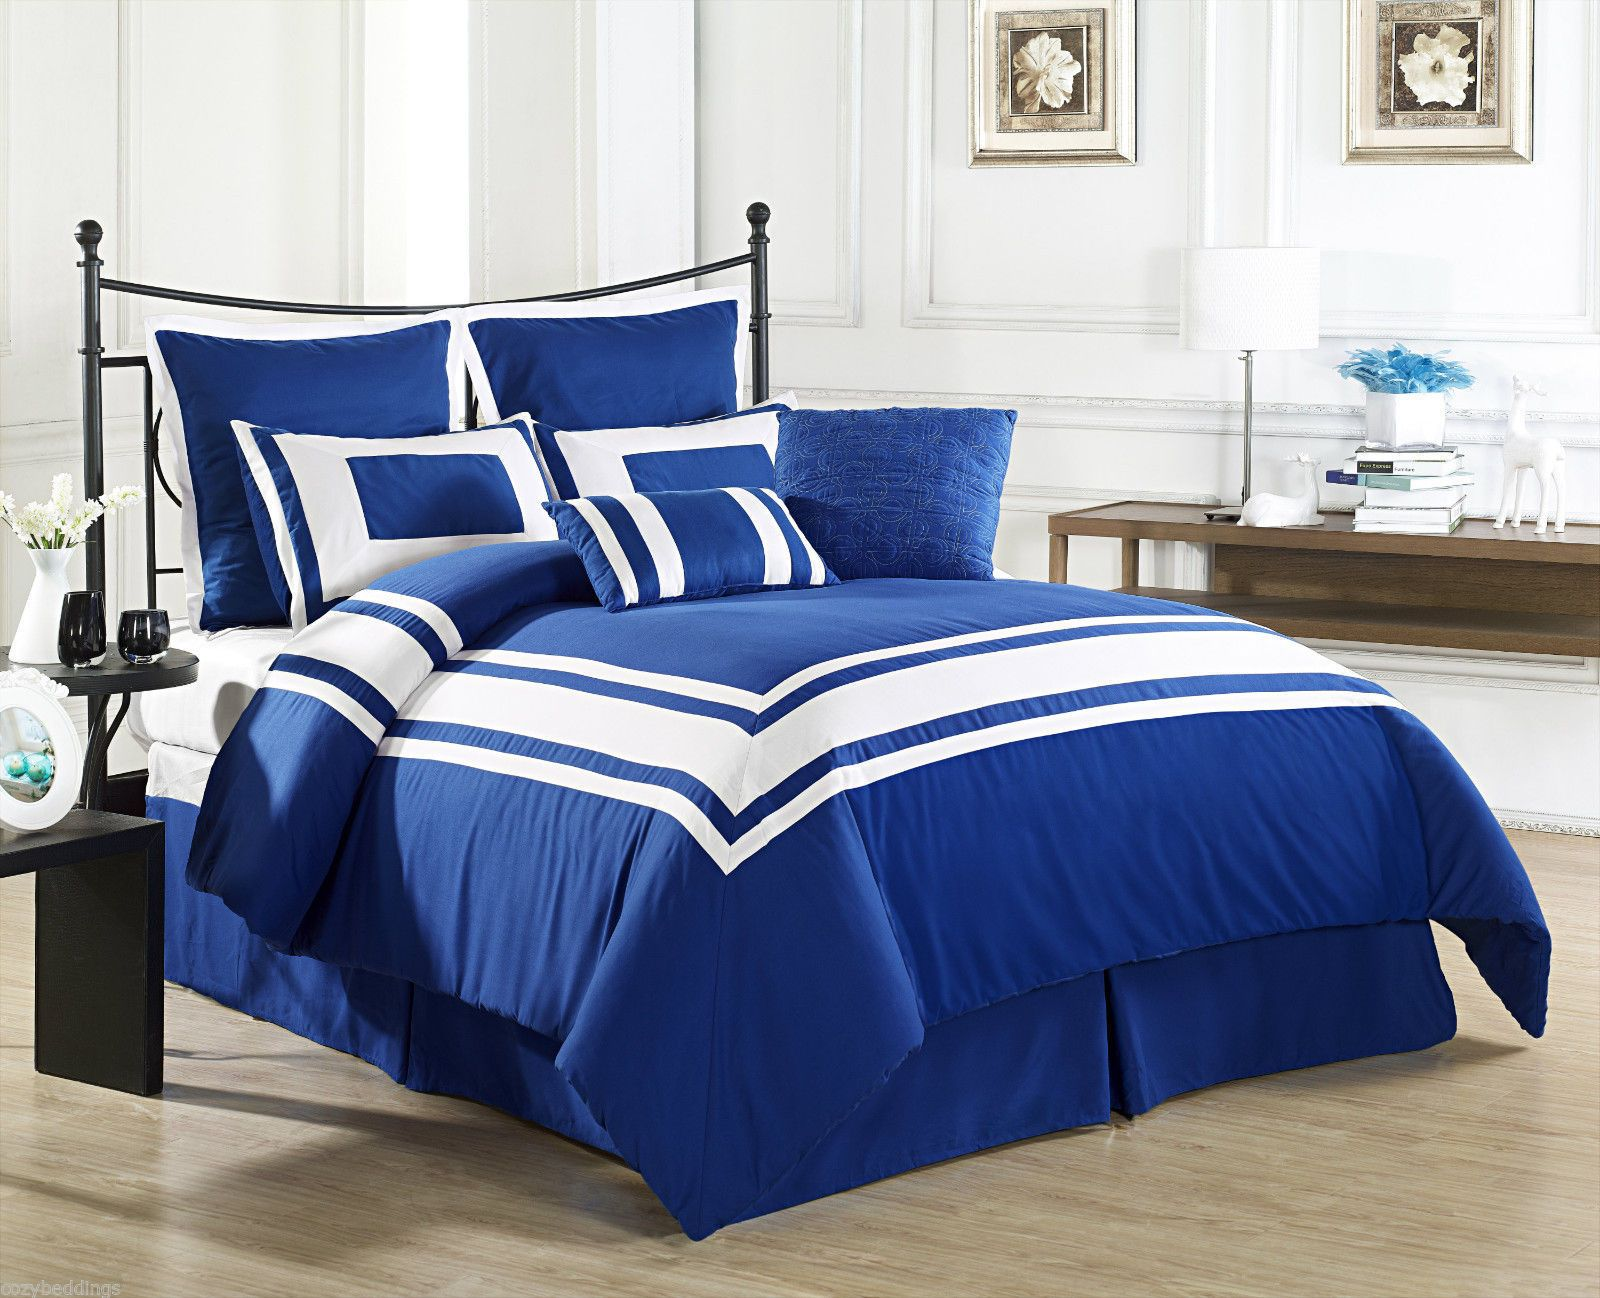 Lux Decor Royal BLUE - QUEEN Size Bed 8-Piece Comforter ...